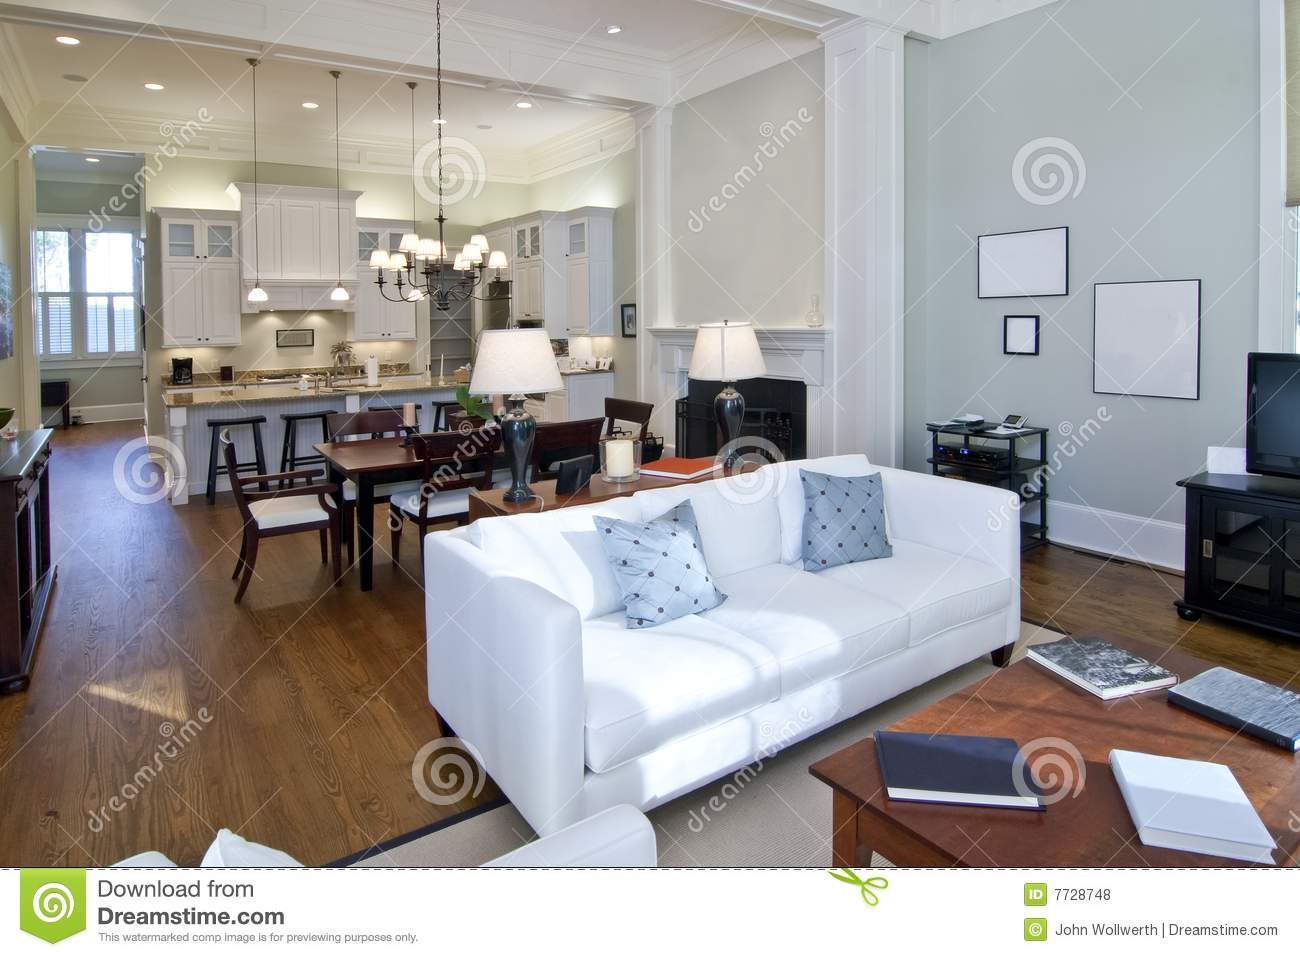 Modern Studio Apartment Royalty Free Stock Photos Image  : modern studio apartment 7728748 from www.dreamstime.com size 1300 x 957 jpeg 119kB